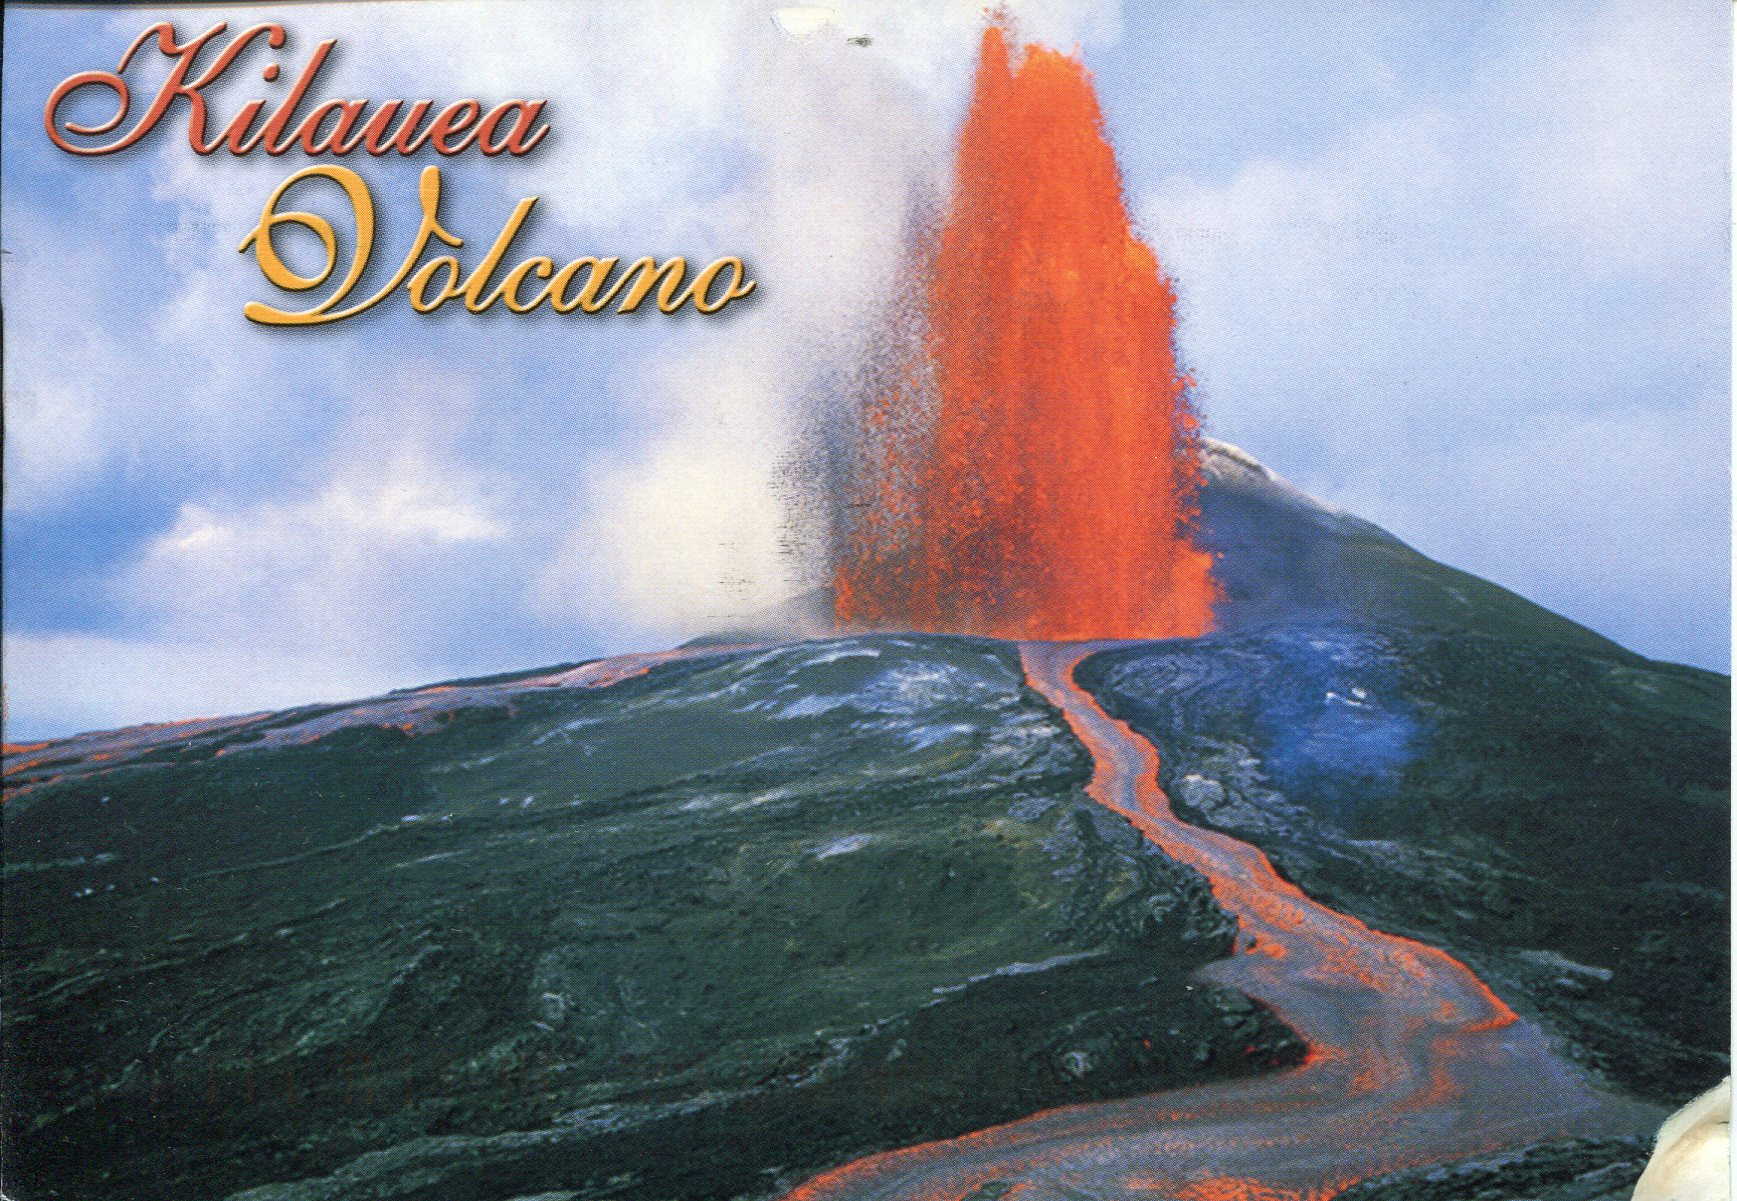 essay on volcanoes in hawaii Volcano essays there are different perspectives and opinions about volcanoes, but the two major expressions on volcanoes that come into mind are its beauty and its terror though many people.